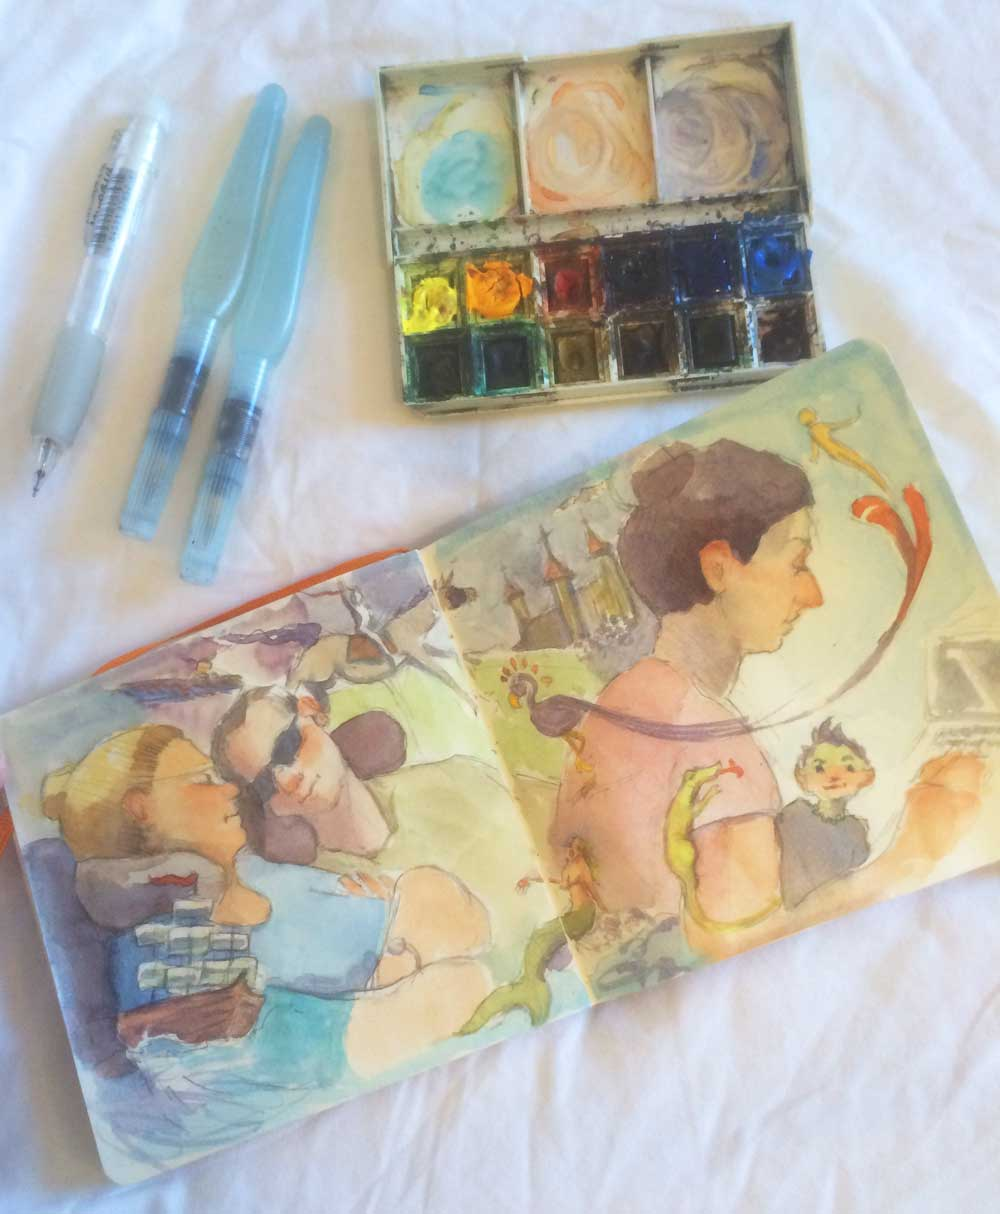 This is my watercolor kit for traveling. It's small, fits in my laptop case, and I can paint almost anywhere with it. Clockwise from top left: Sakura Sumo Grip mechanical pencil; Aquash Watercolor brush; Windsor Newton travel paint box; Handbook Artist Journal (5.5″ x 5.5″).